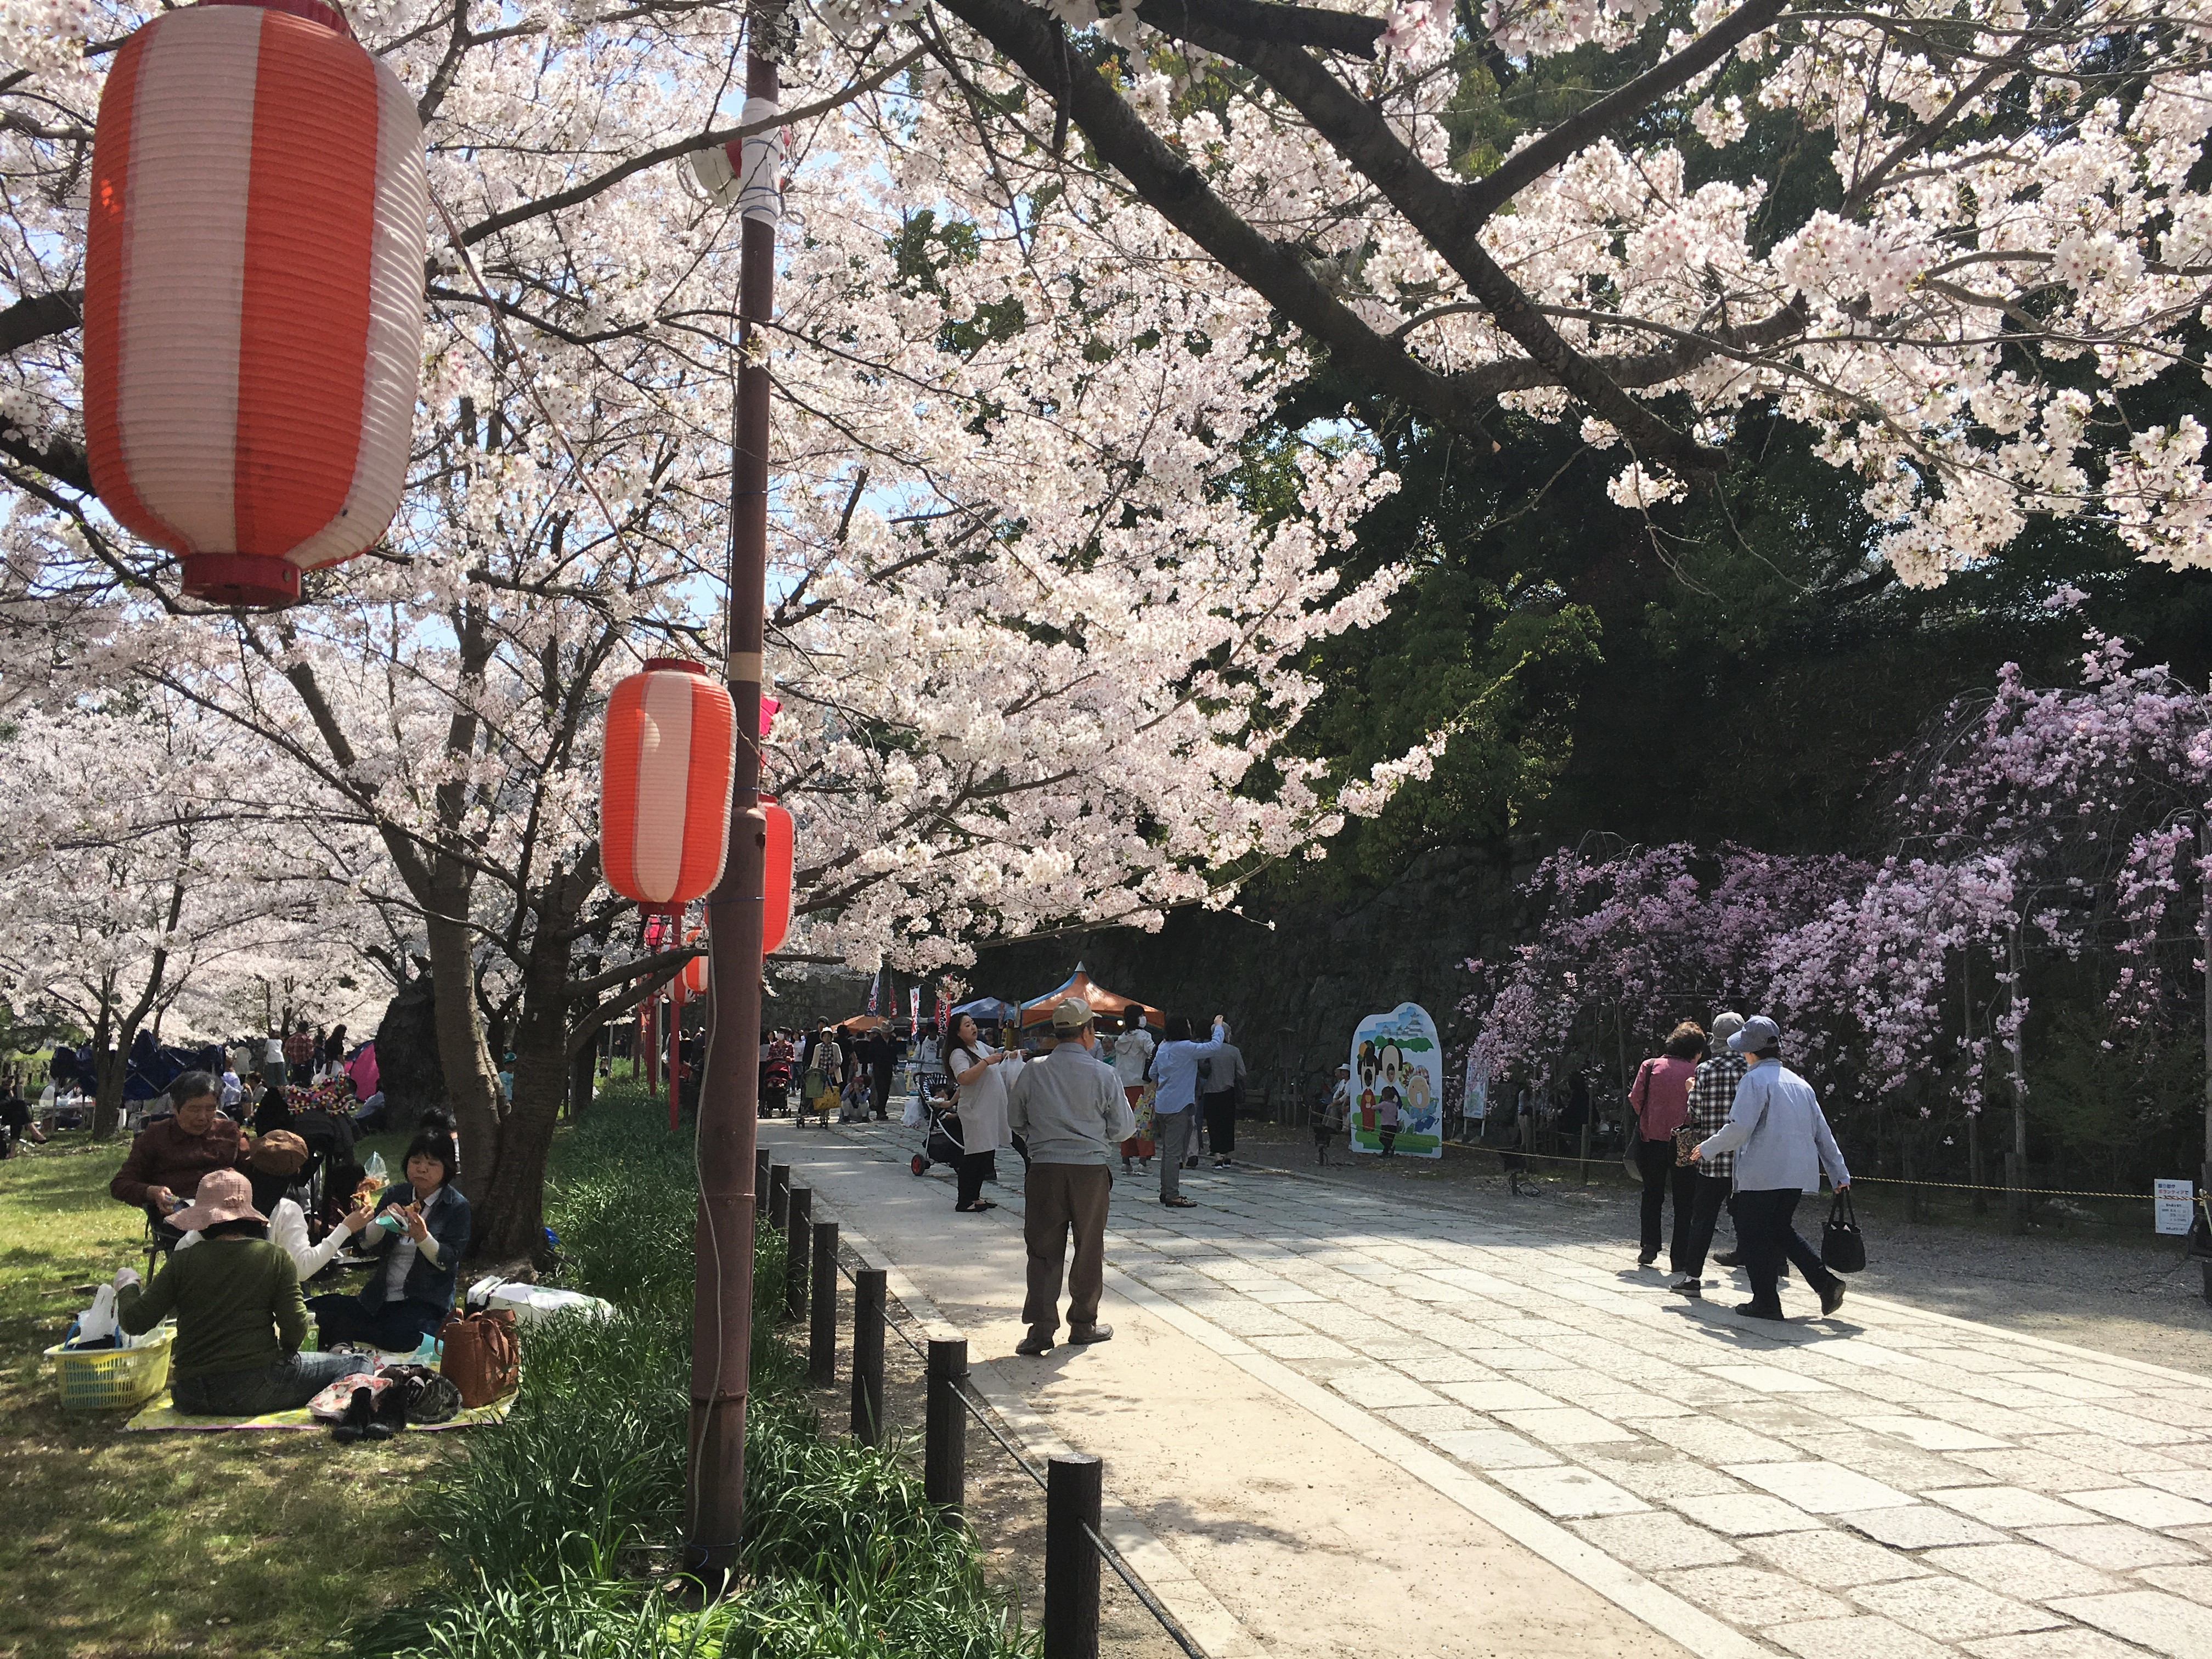 Blooming courtyard of Wakayama Castle in spring and people picnicking